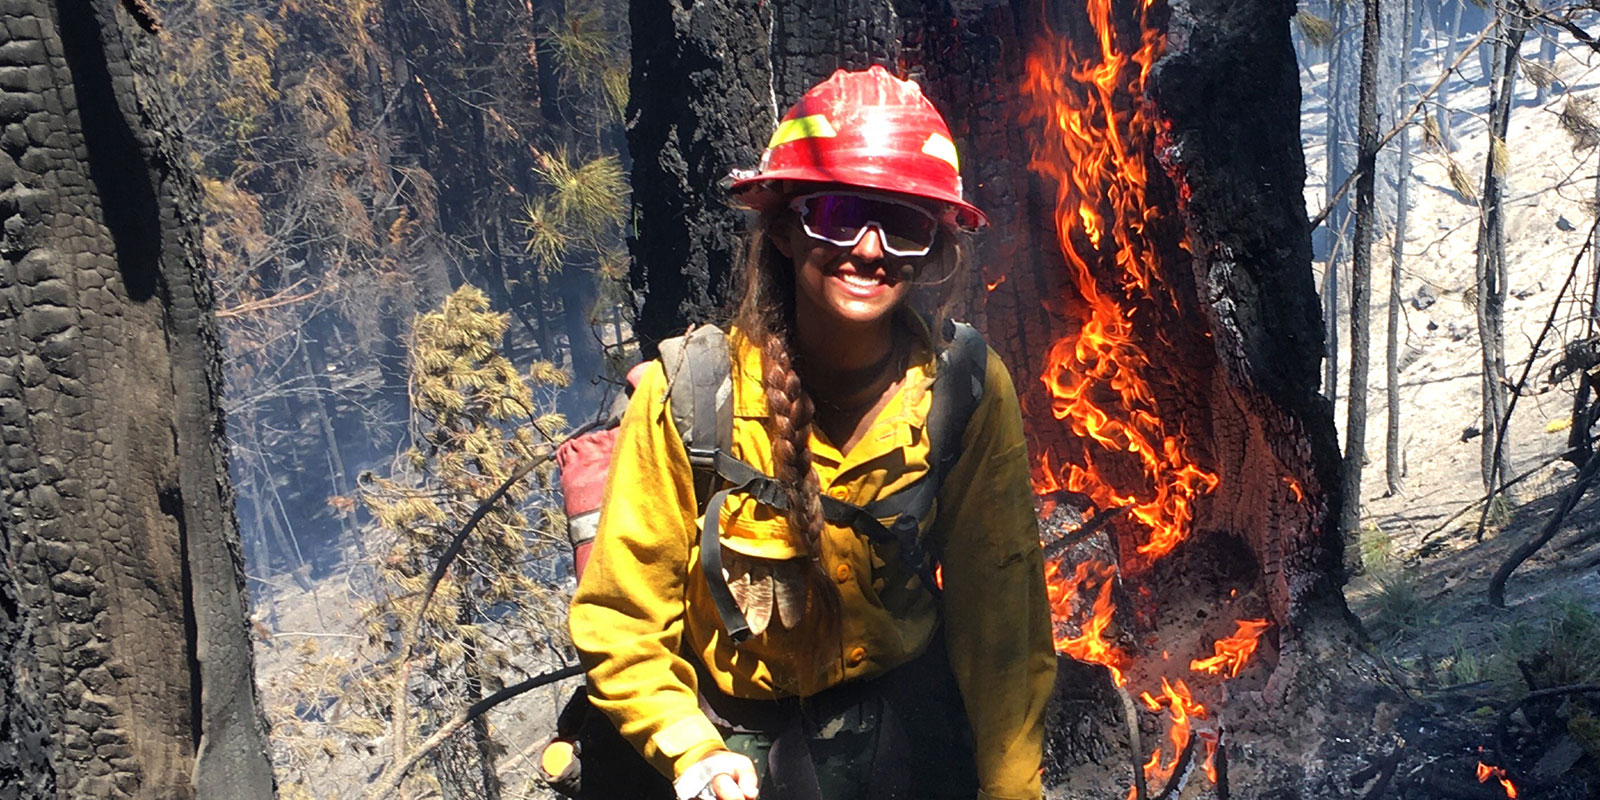 USD student Claire Graziano on site fighting a fire